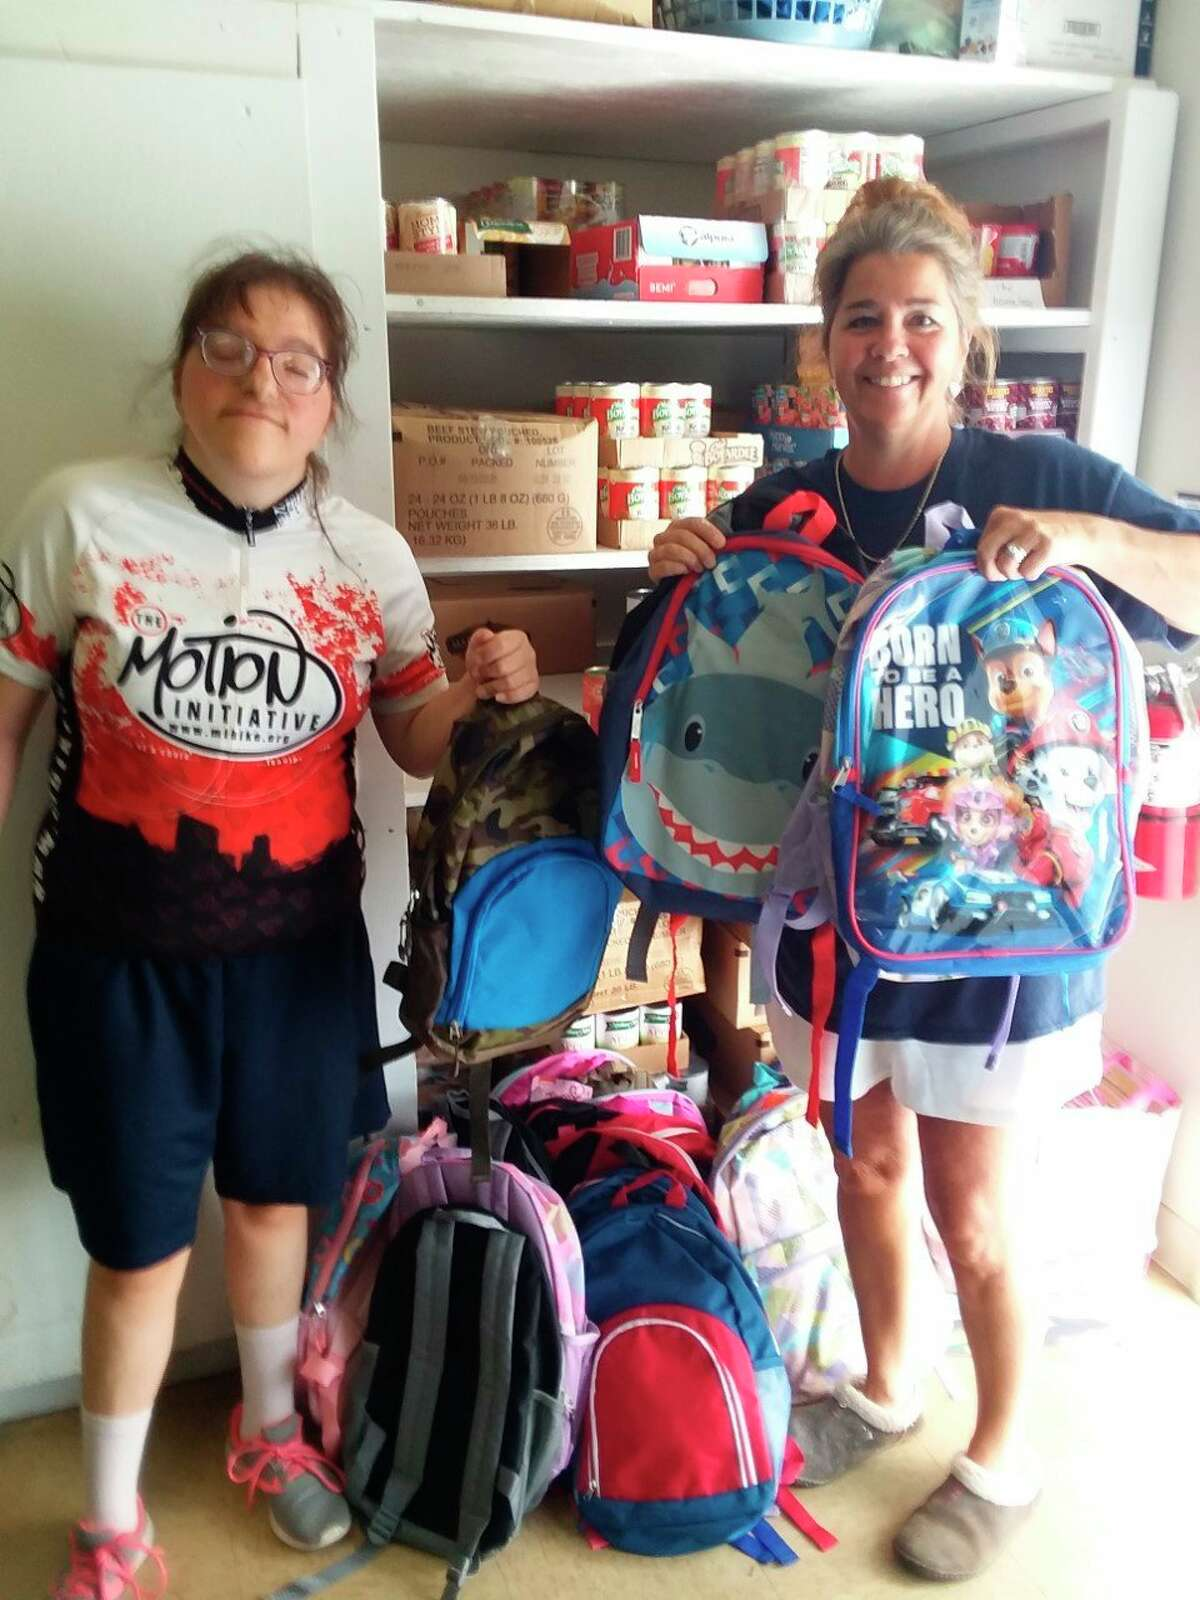 For the last two years, Alicia and Renae Walker have donated book bags filled with school supplies to the Bread of Life Pantry in Baldwin. (Submitted photo)